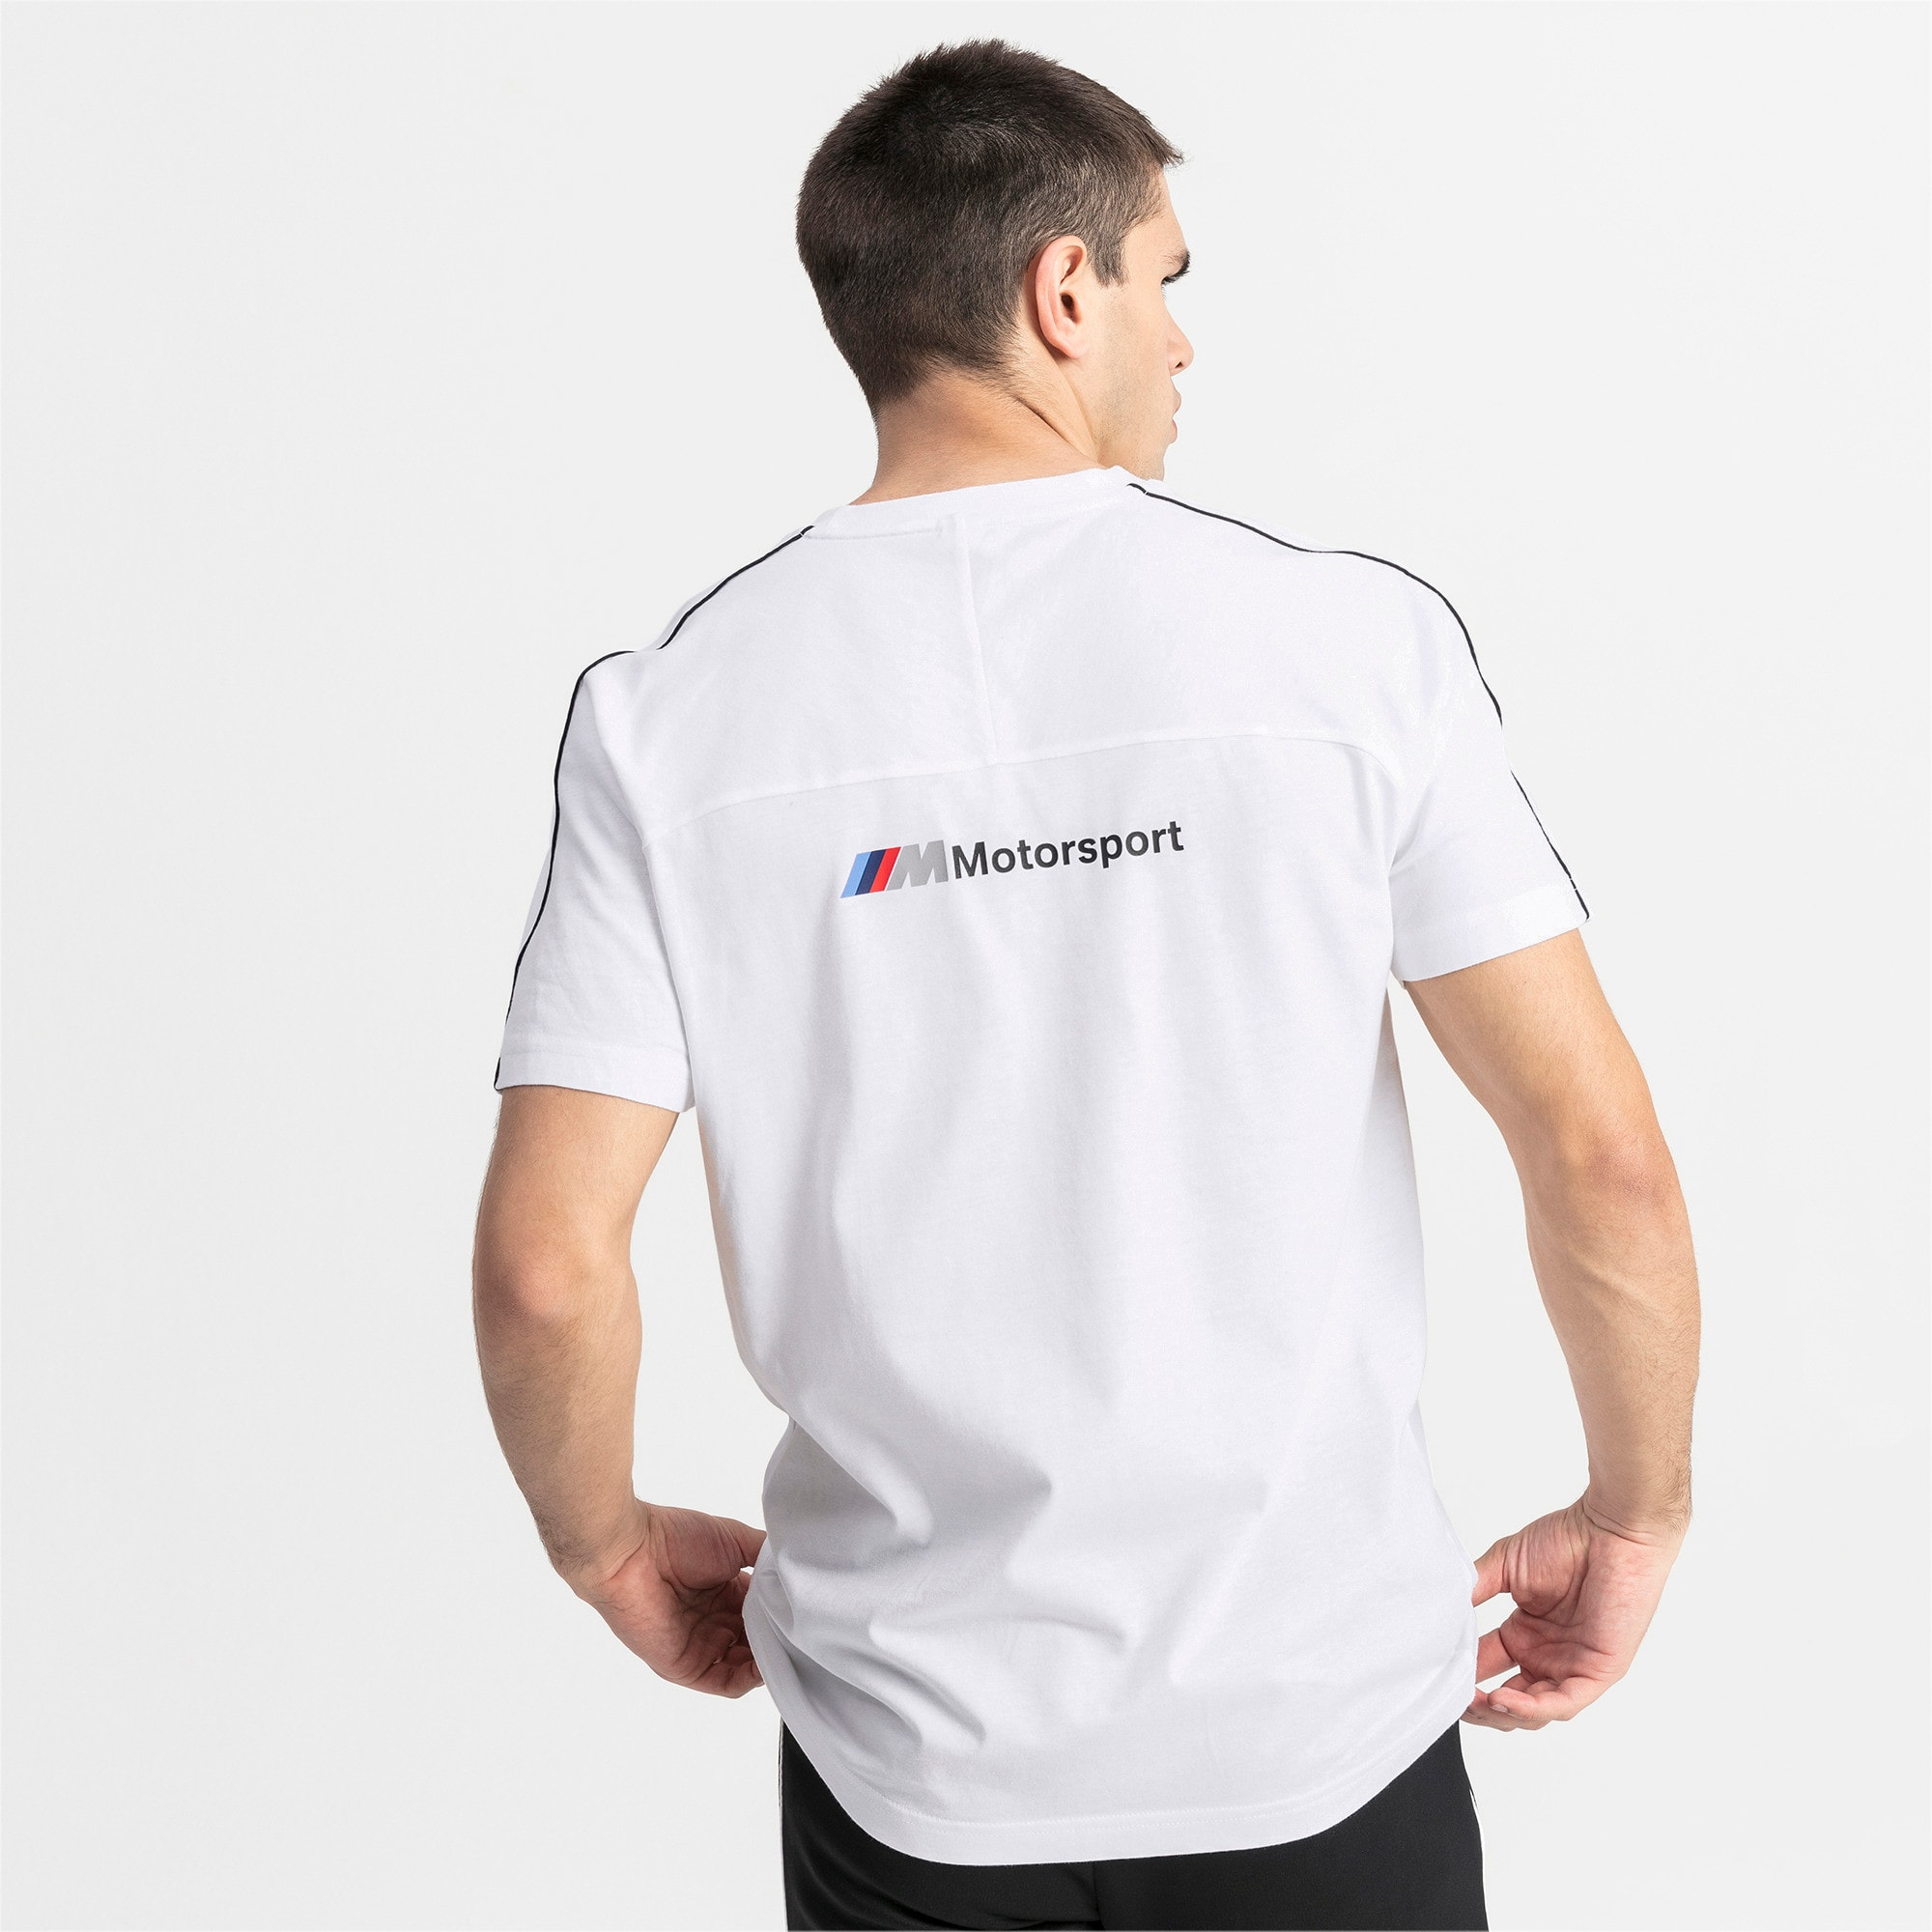 Thumbnail 2 of BMW M Motorsport T7 Men's Tee, Puma White, medium